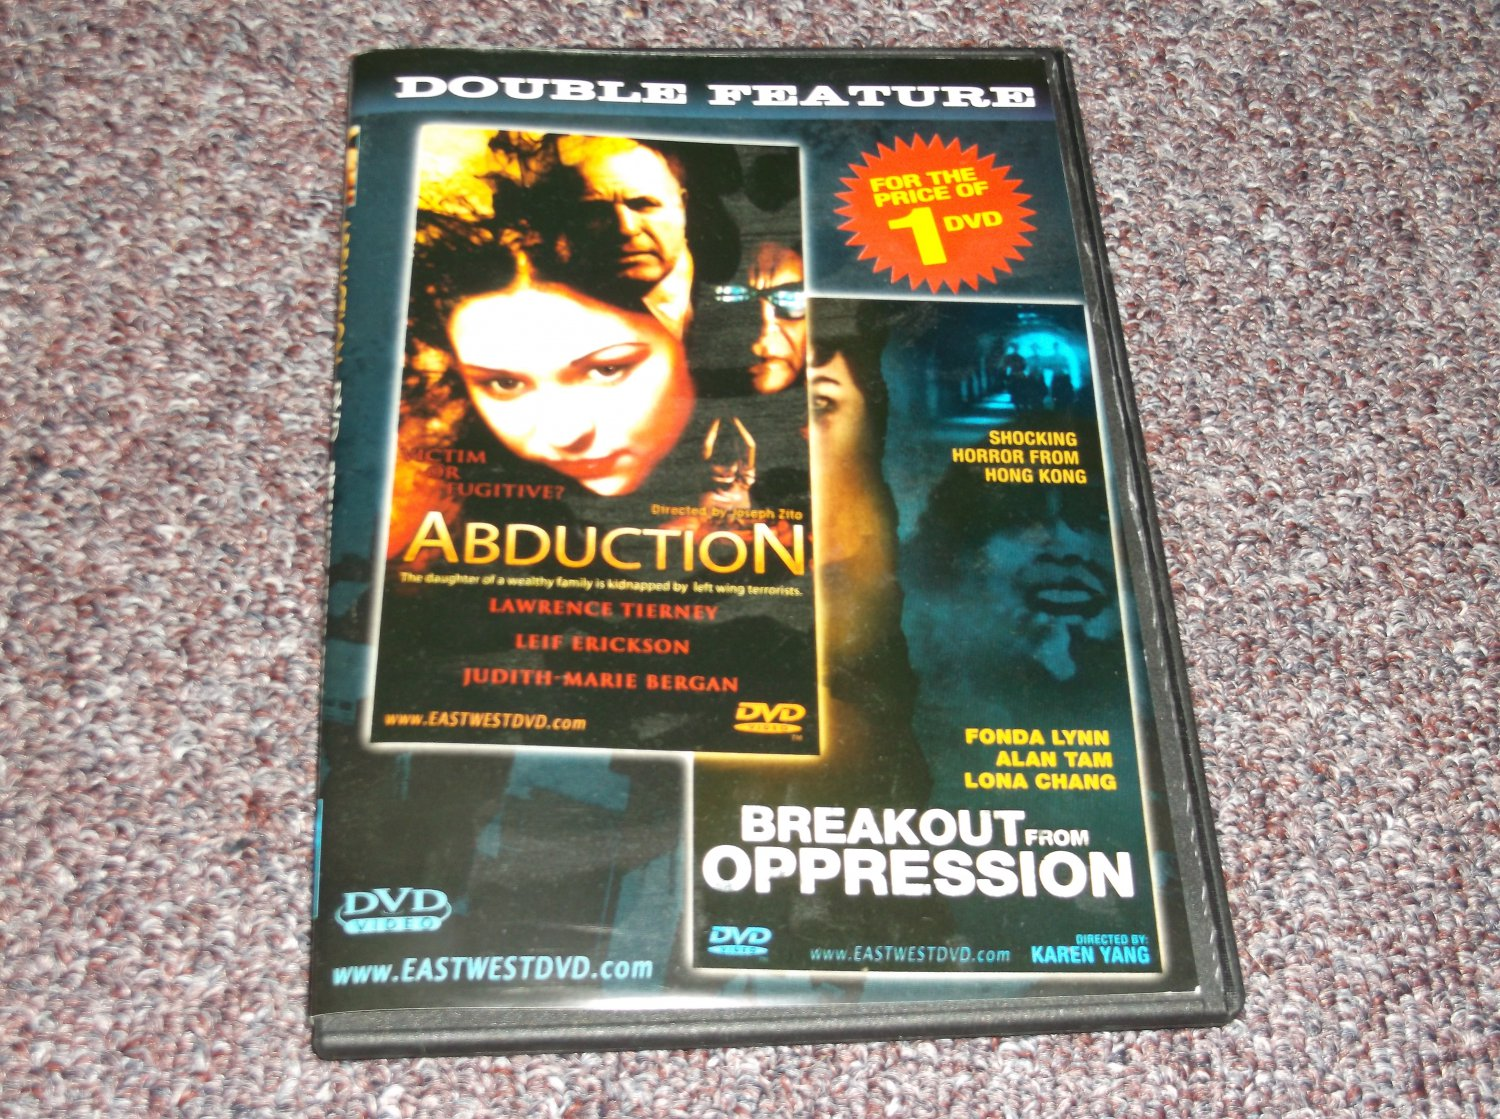 Abduction/Breakout from Oppression DVD Region 0